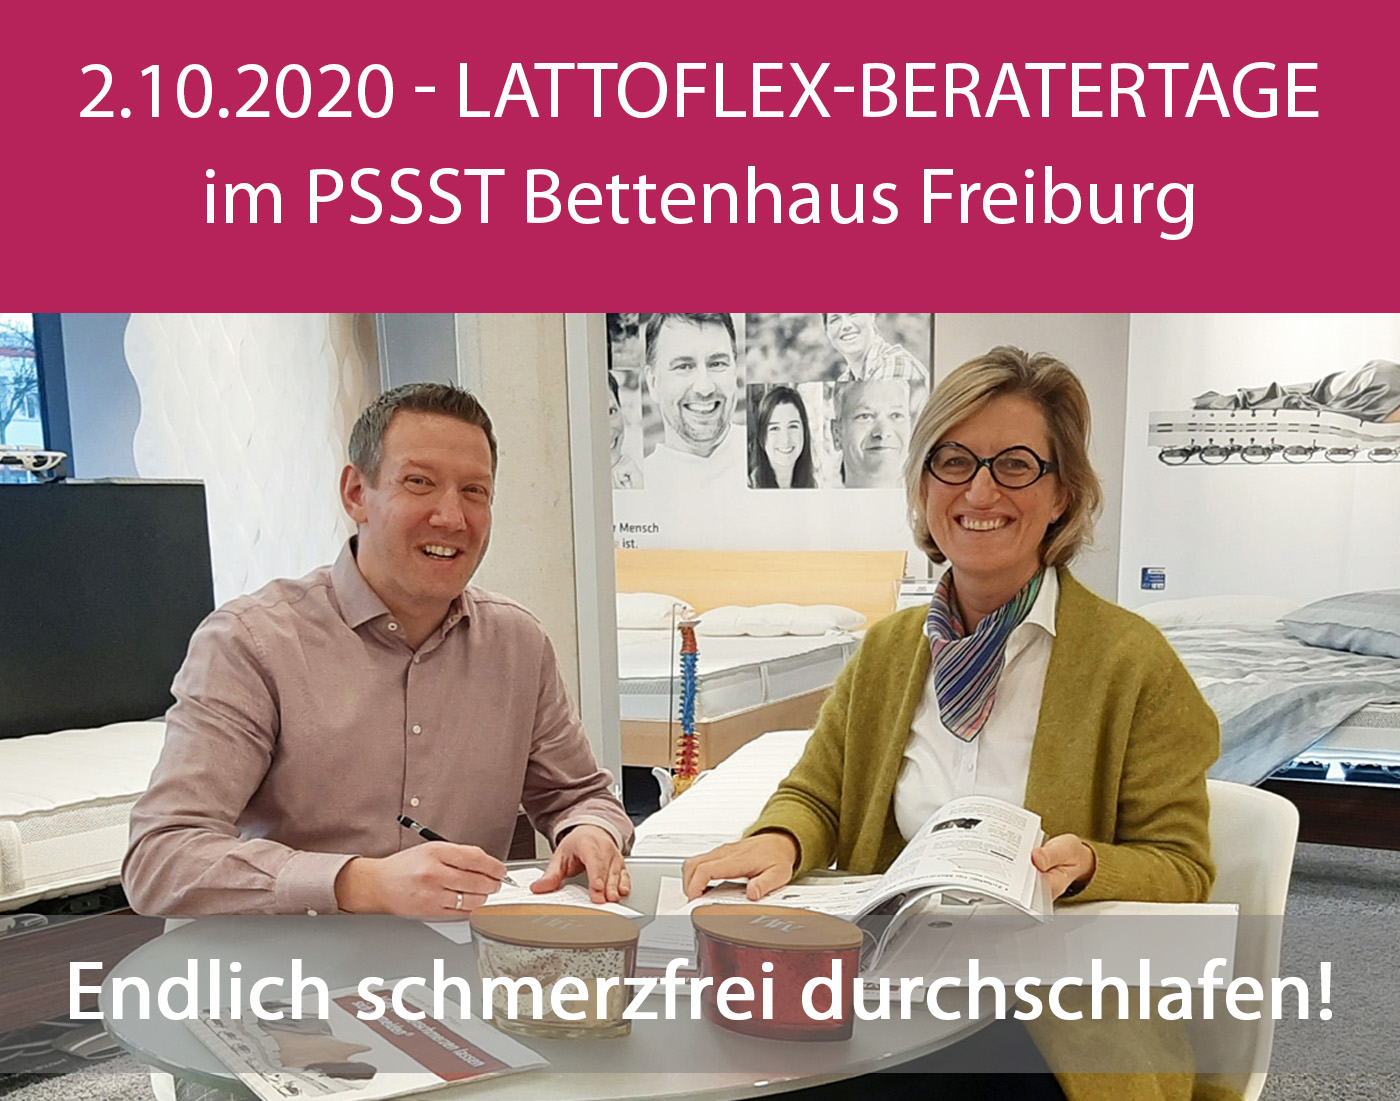 News - PSSST-Lattoflex-Beratertage Freitag 2.10.2020